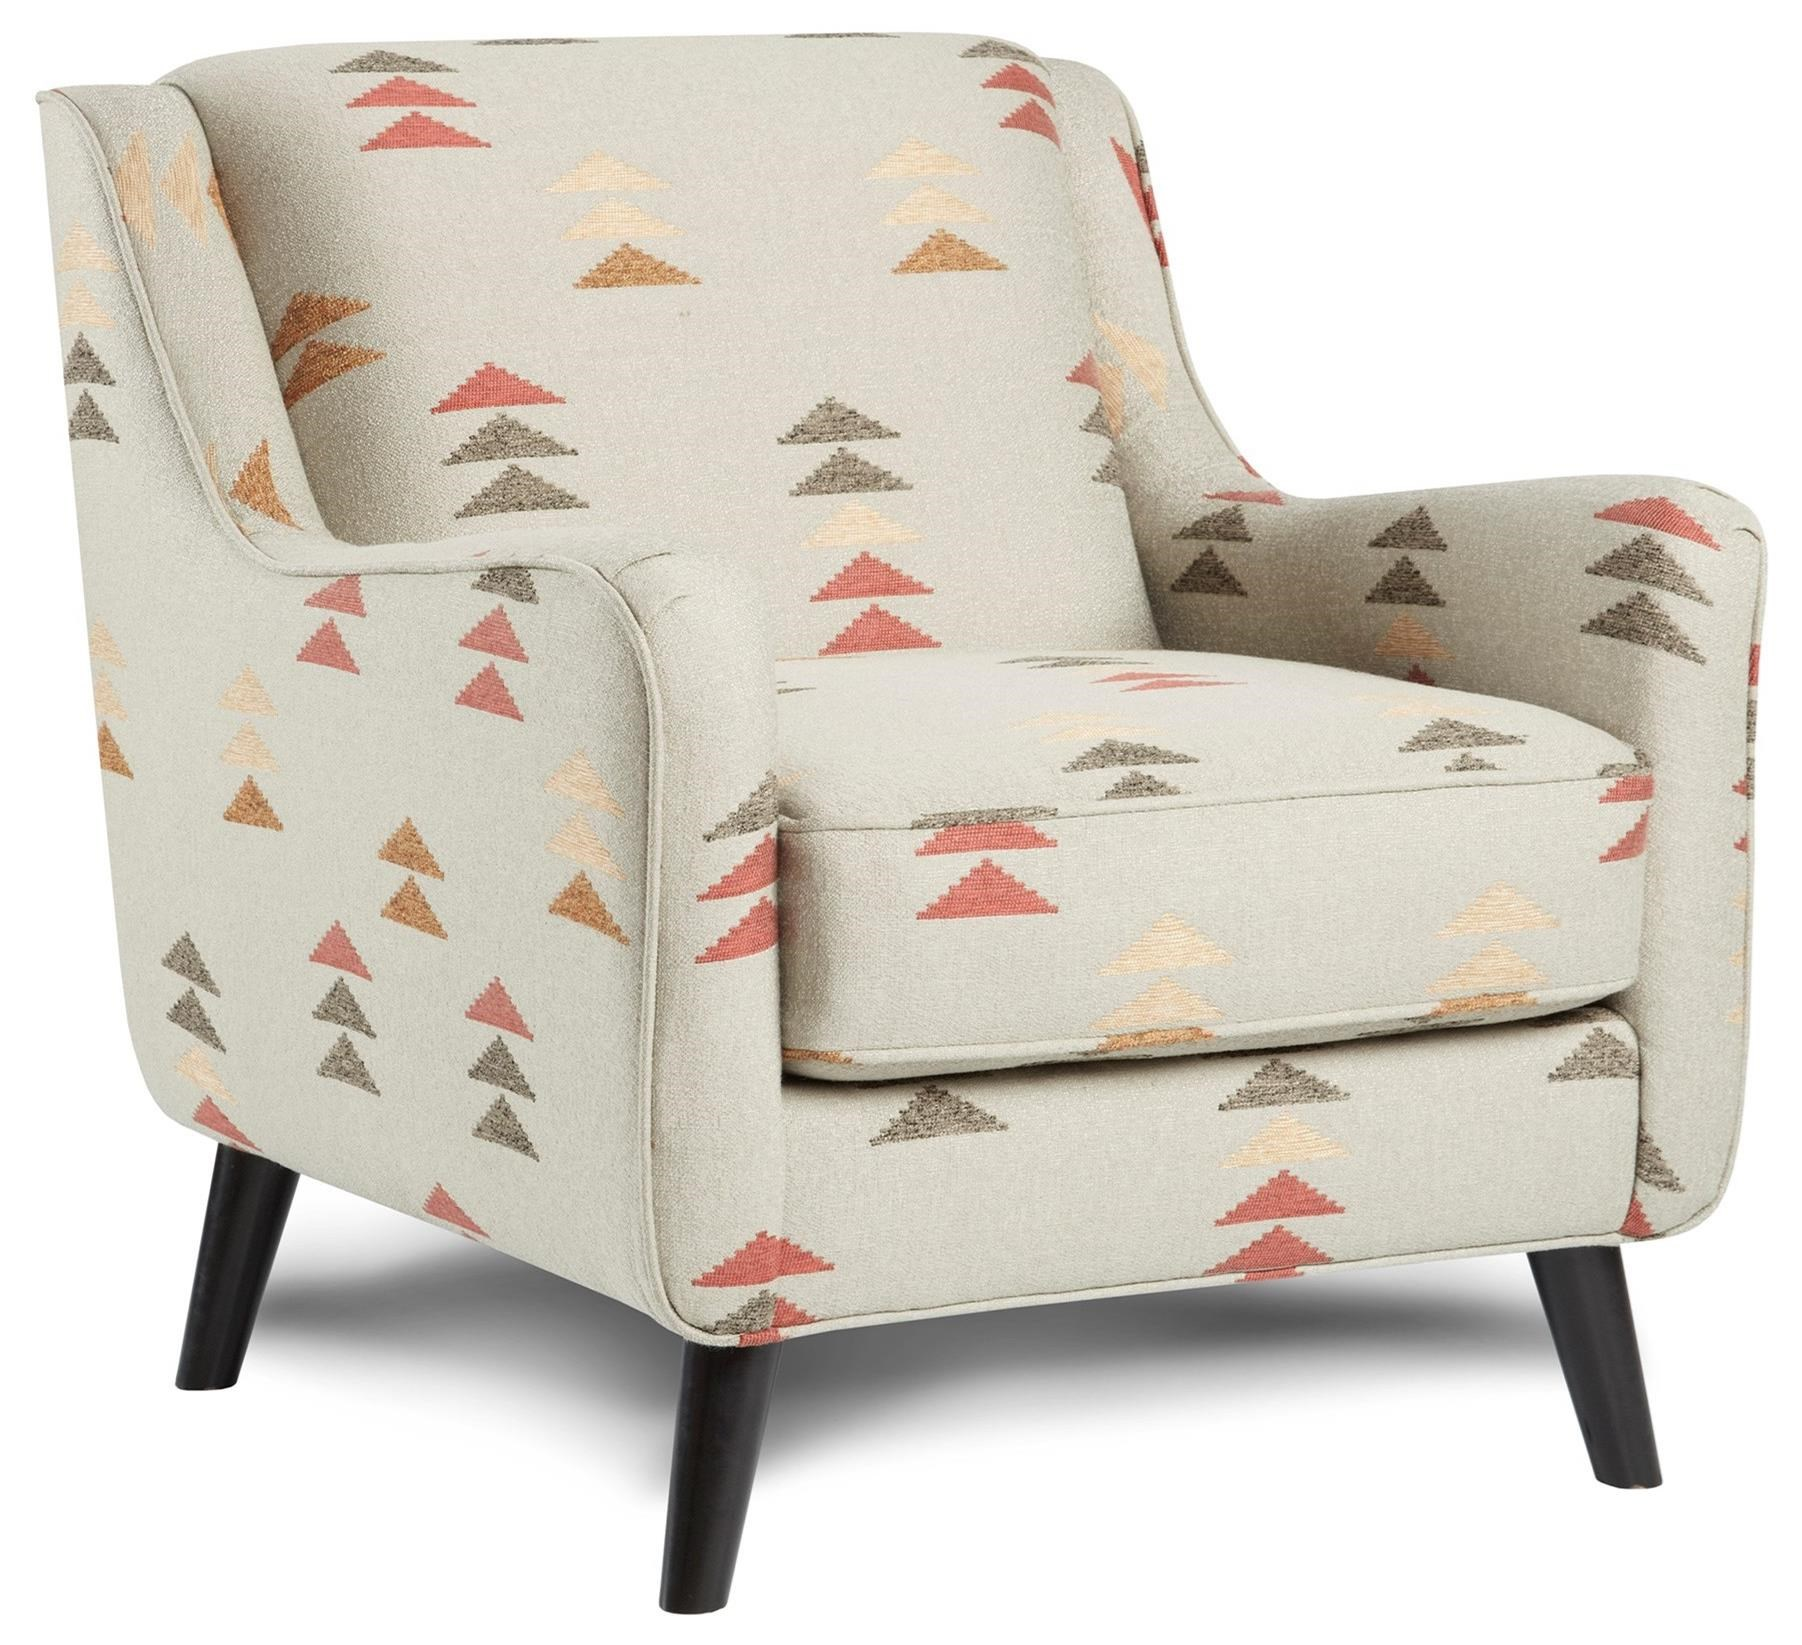 240 Chair by Fusion Furniture at Lindy's Furniture Company